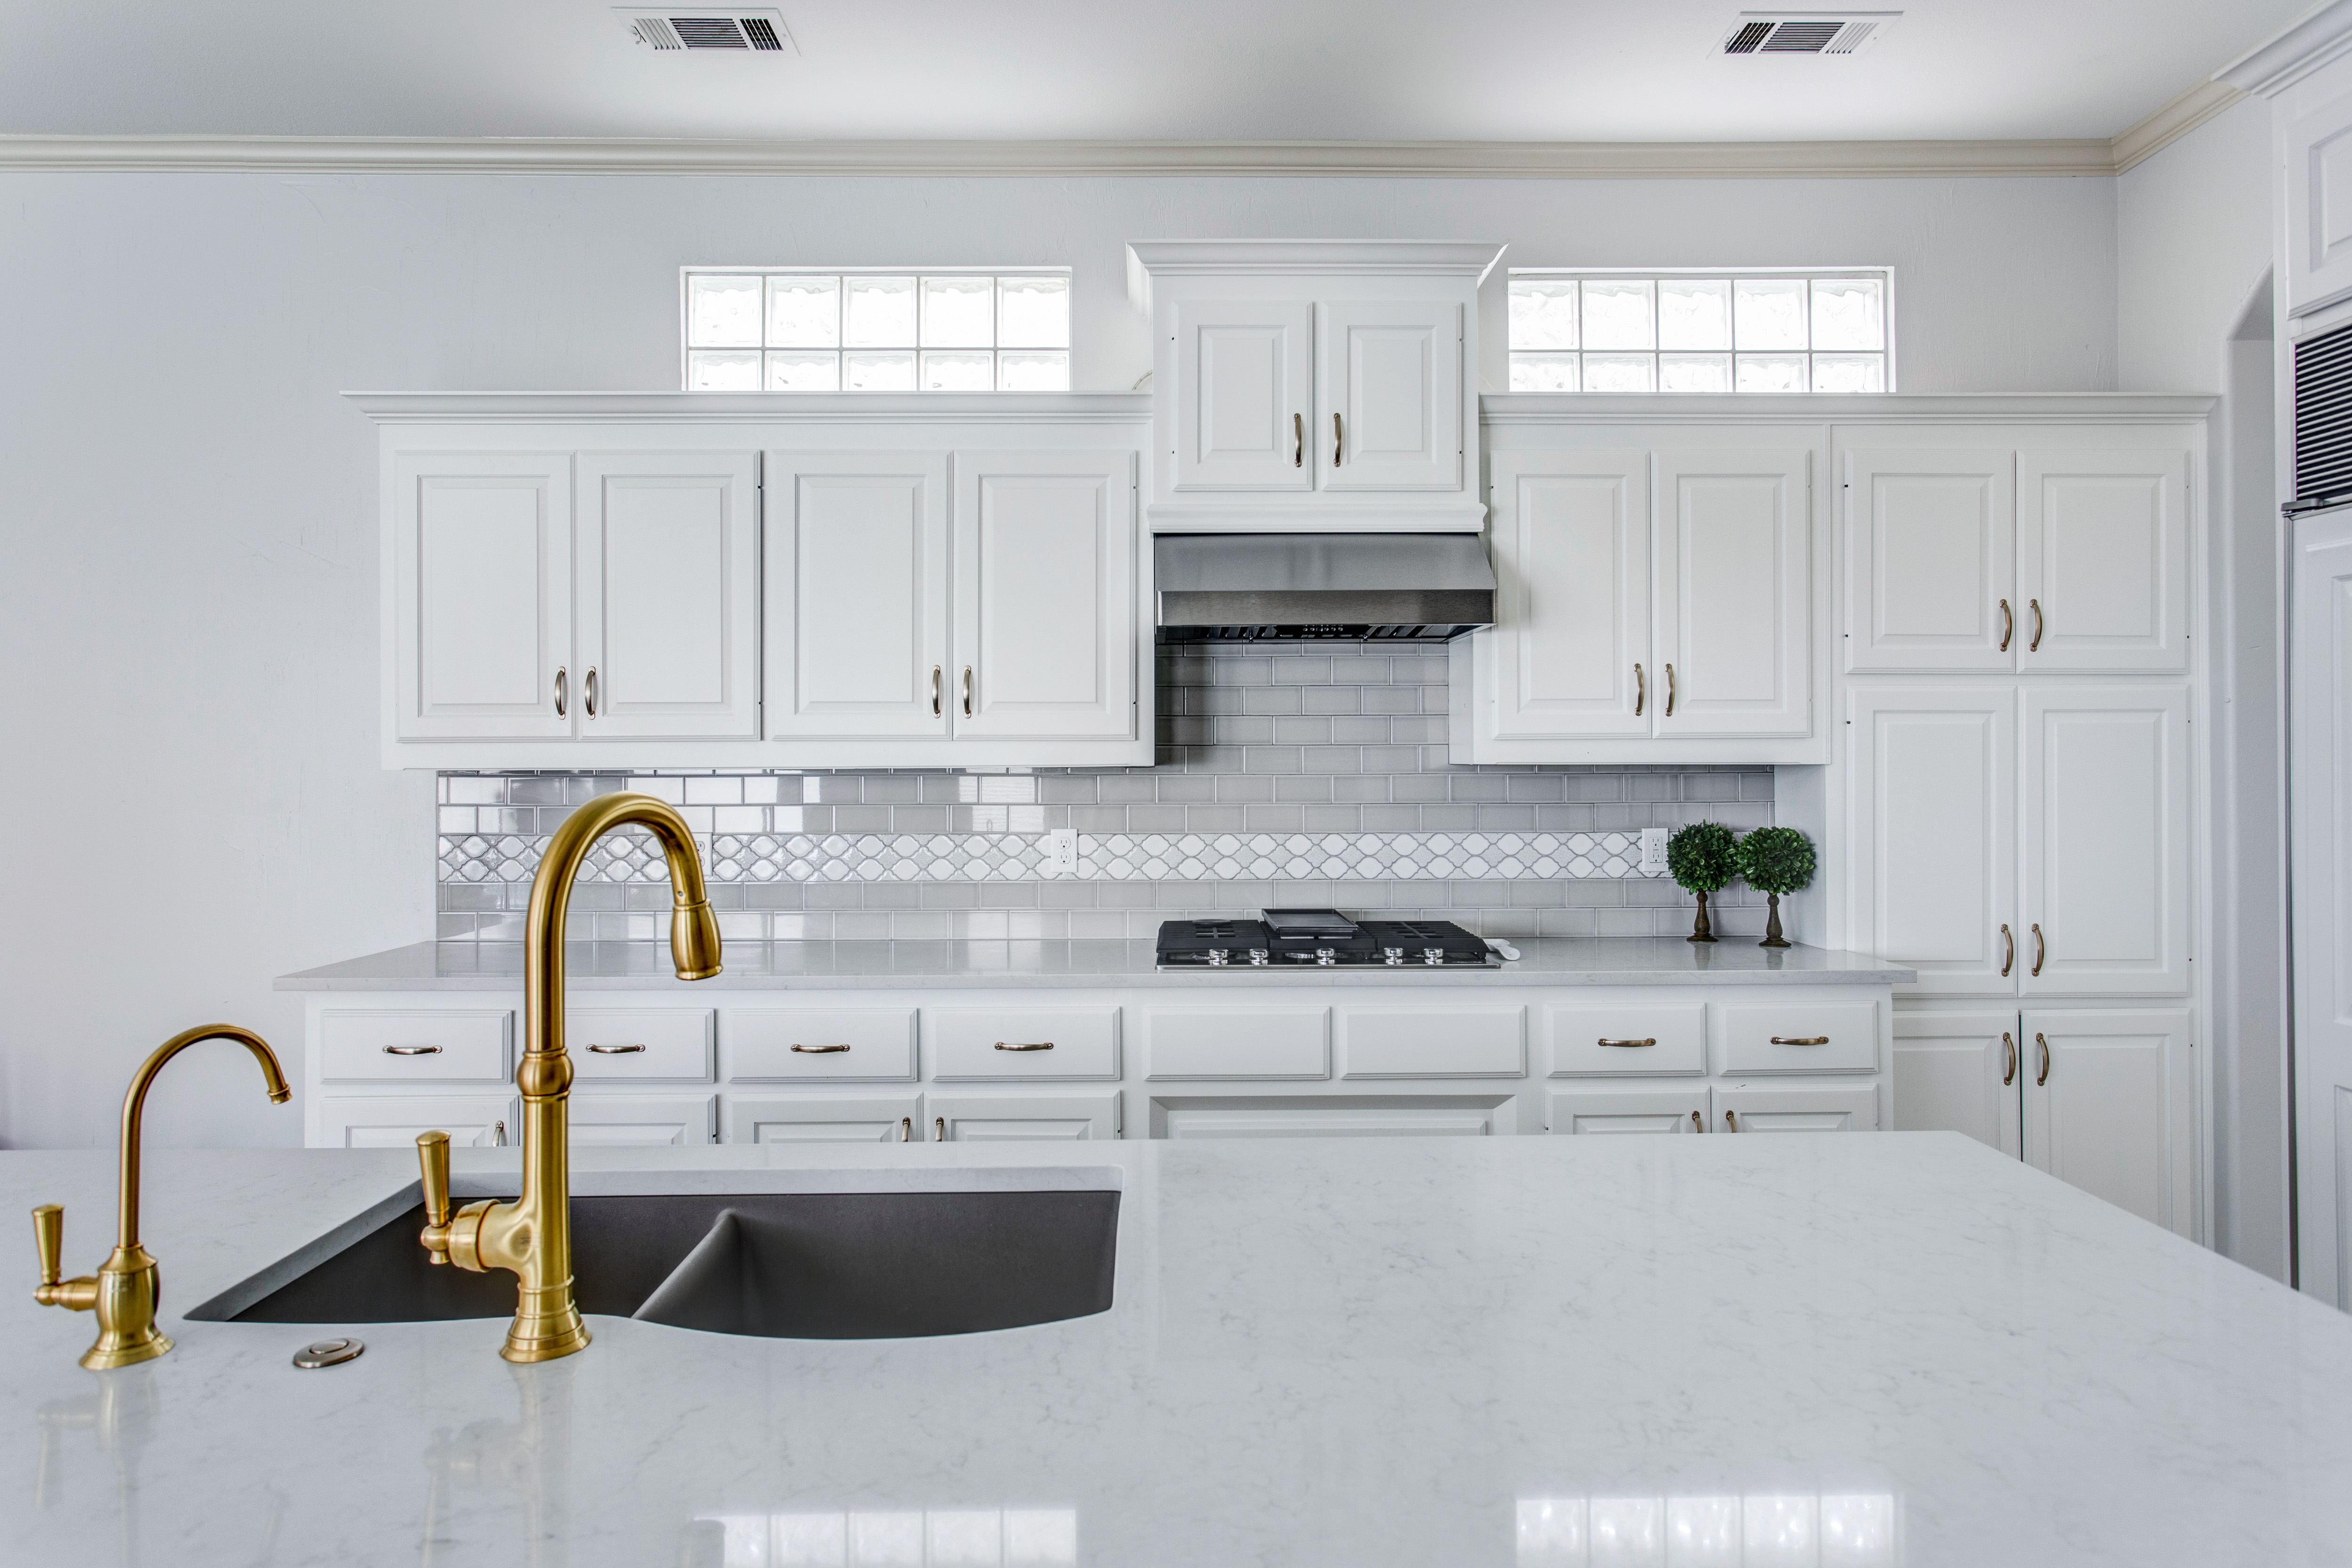 Kitchen Design Concepts In Dallas Tx 75214 Citysearch